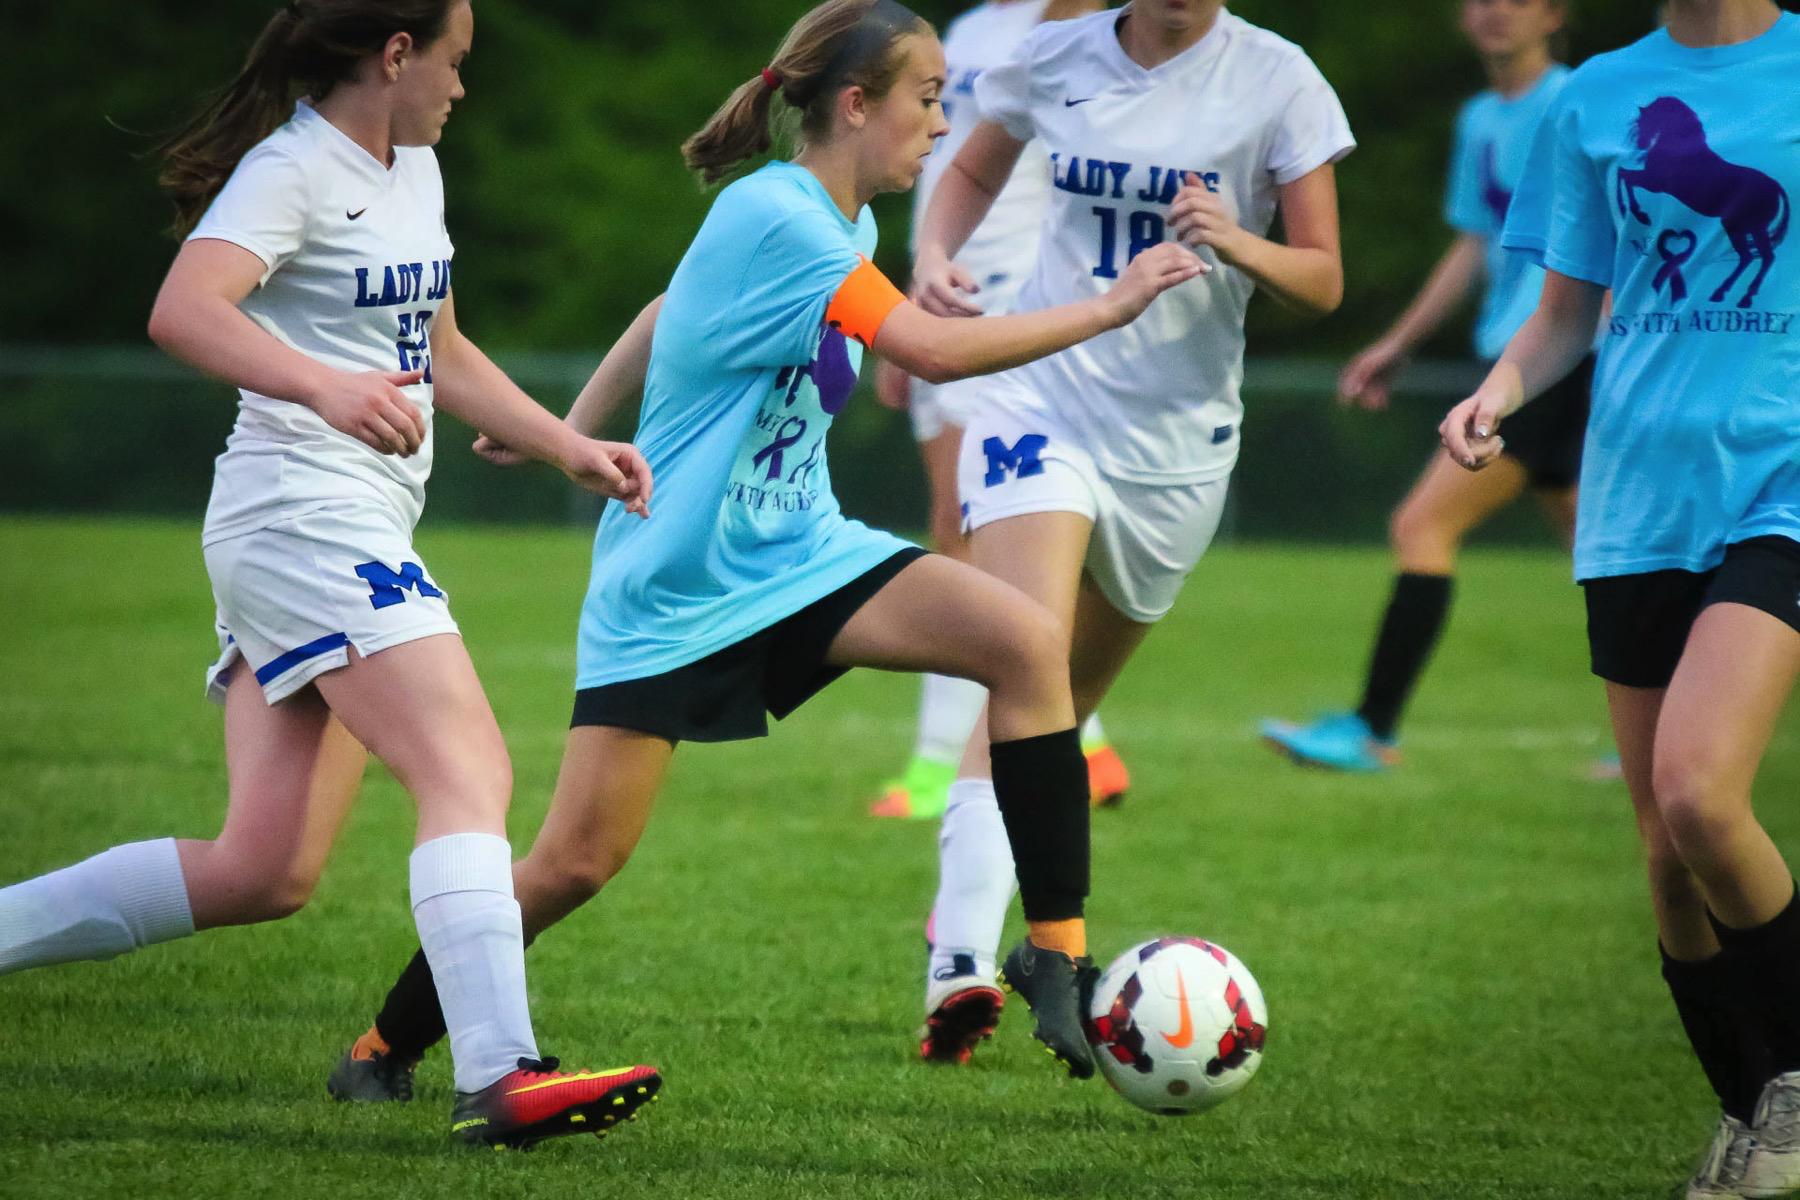 Photos:  Varsity Soccer Vs Marshfield